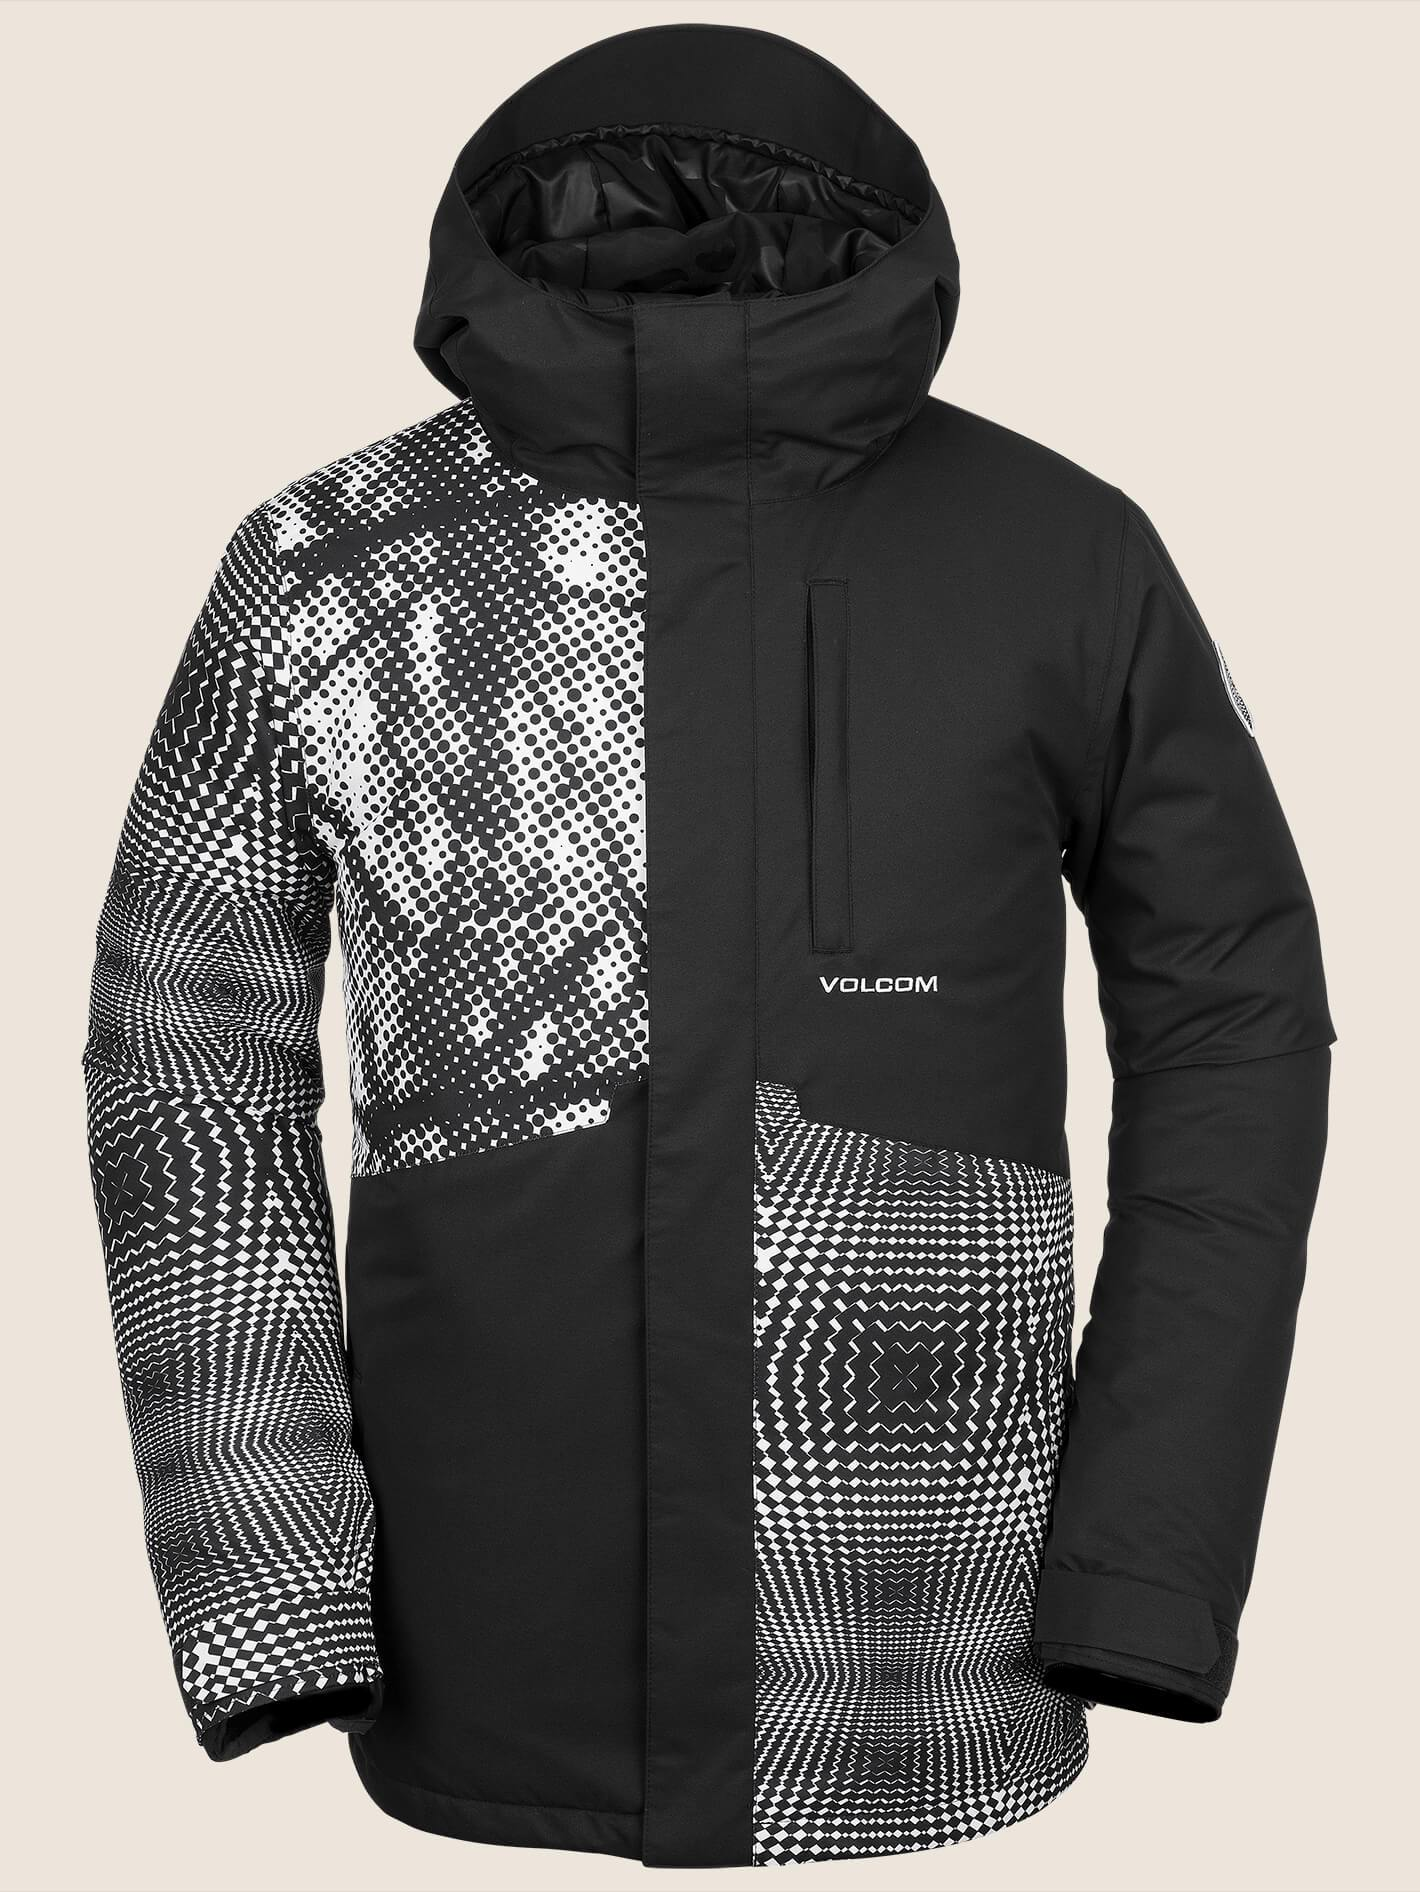 Snowboarding Jacket Volcom Insulated 17 Outdoor Forty pq8Uzz